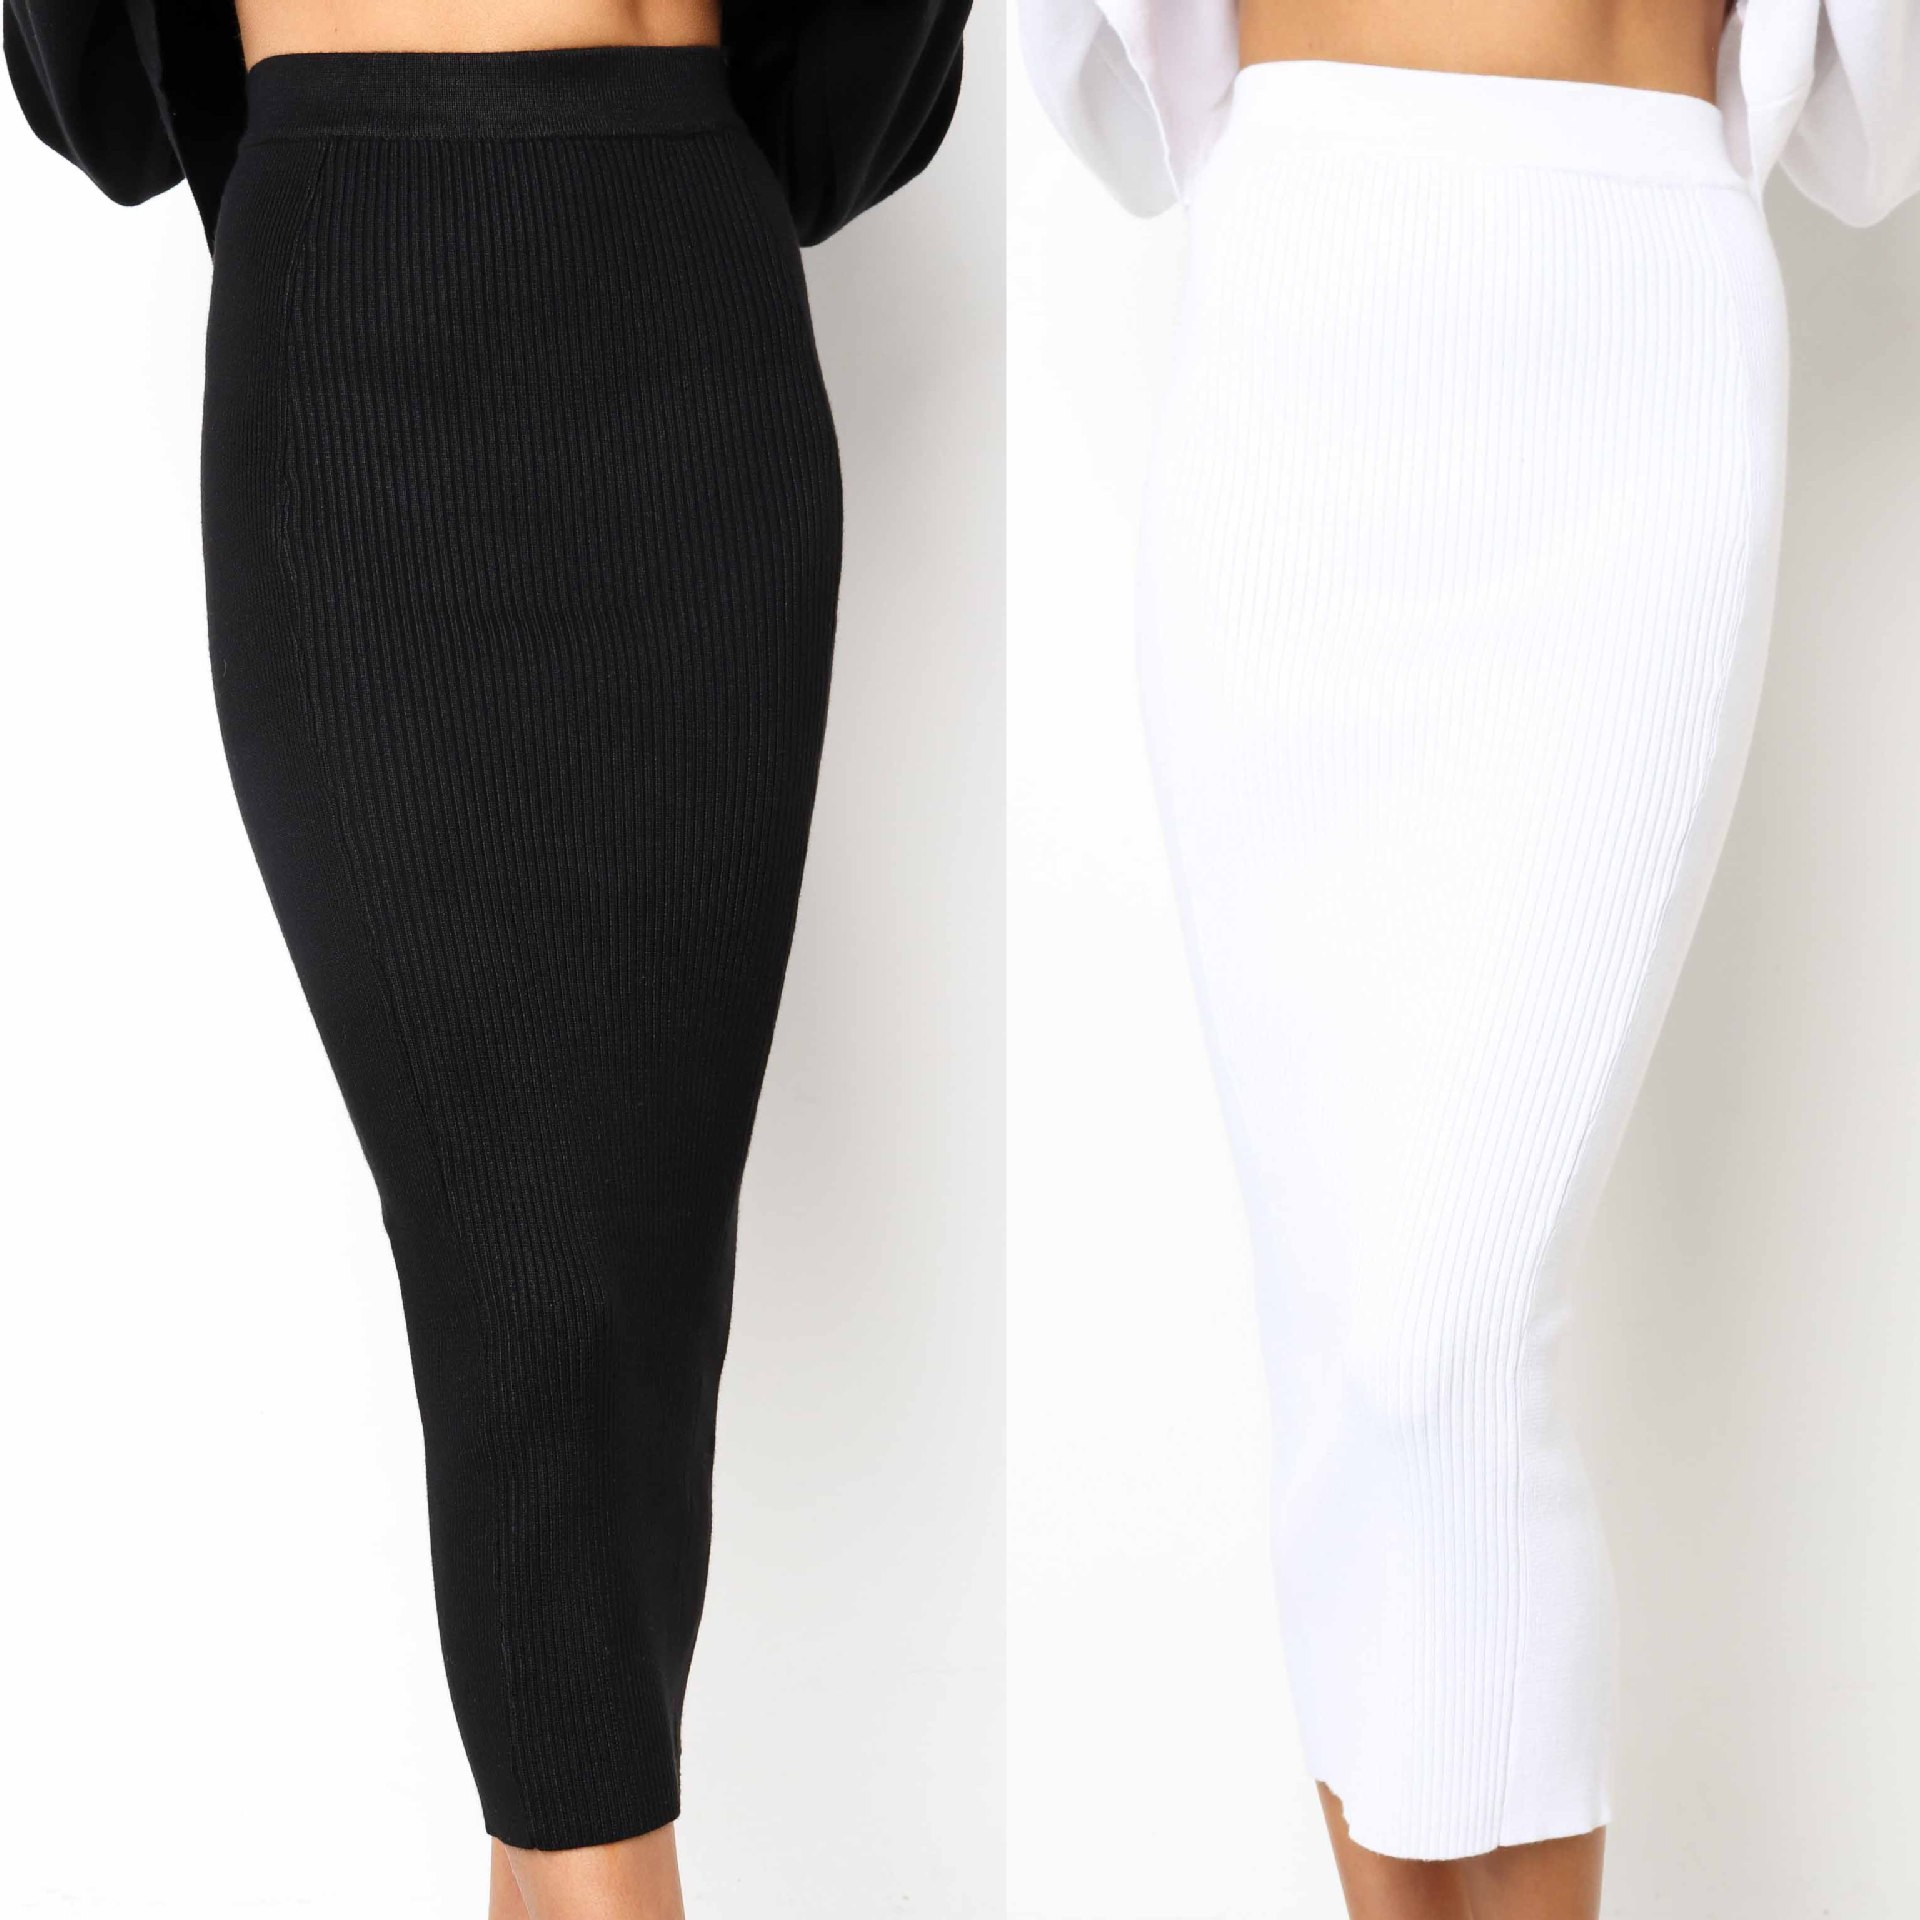 Lossky Knitted Autumn Bodycon Long Skirt Sexy Black White High Waist Tight Women Maxi Elegant Party Club Wear Pencil Skirts